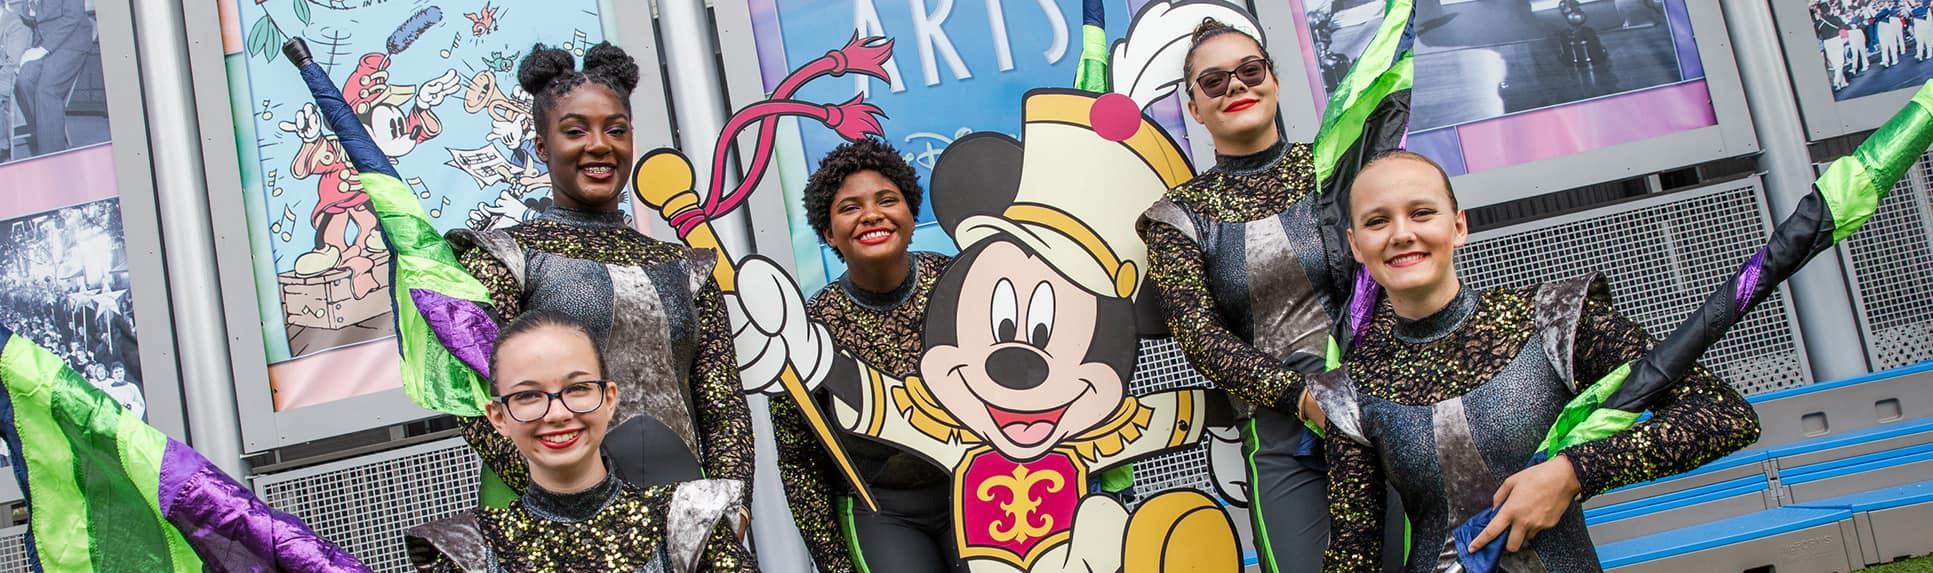 Five women in flag team uniforms posed around a standee of Mickey Mouse as a Drum Major